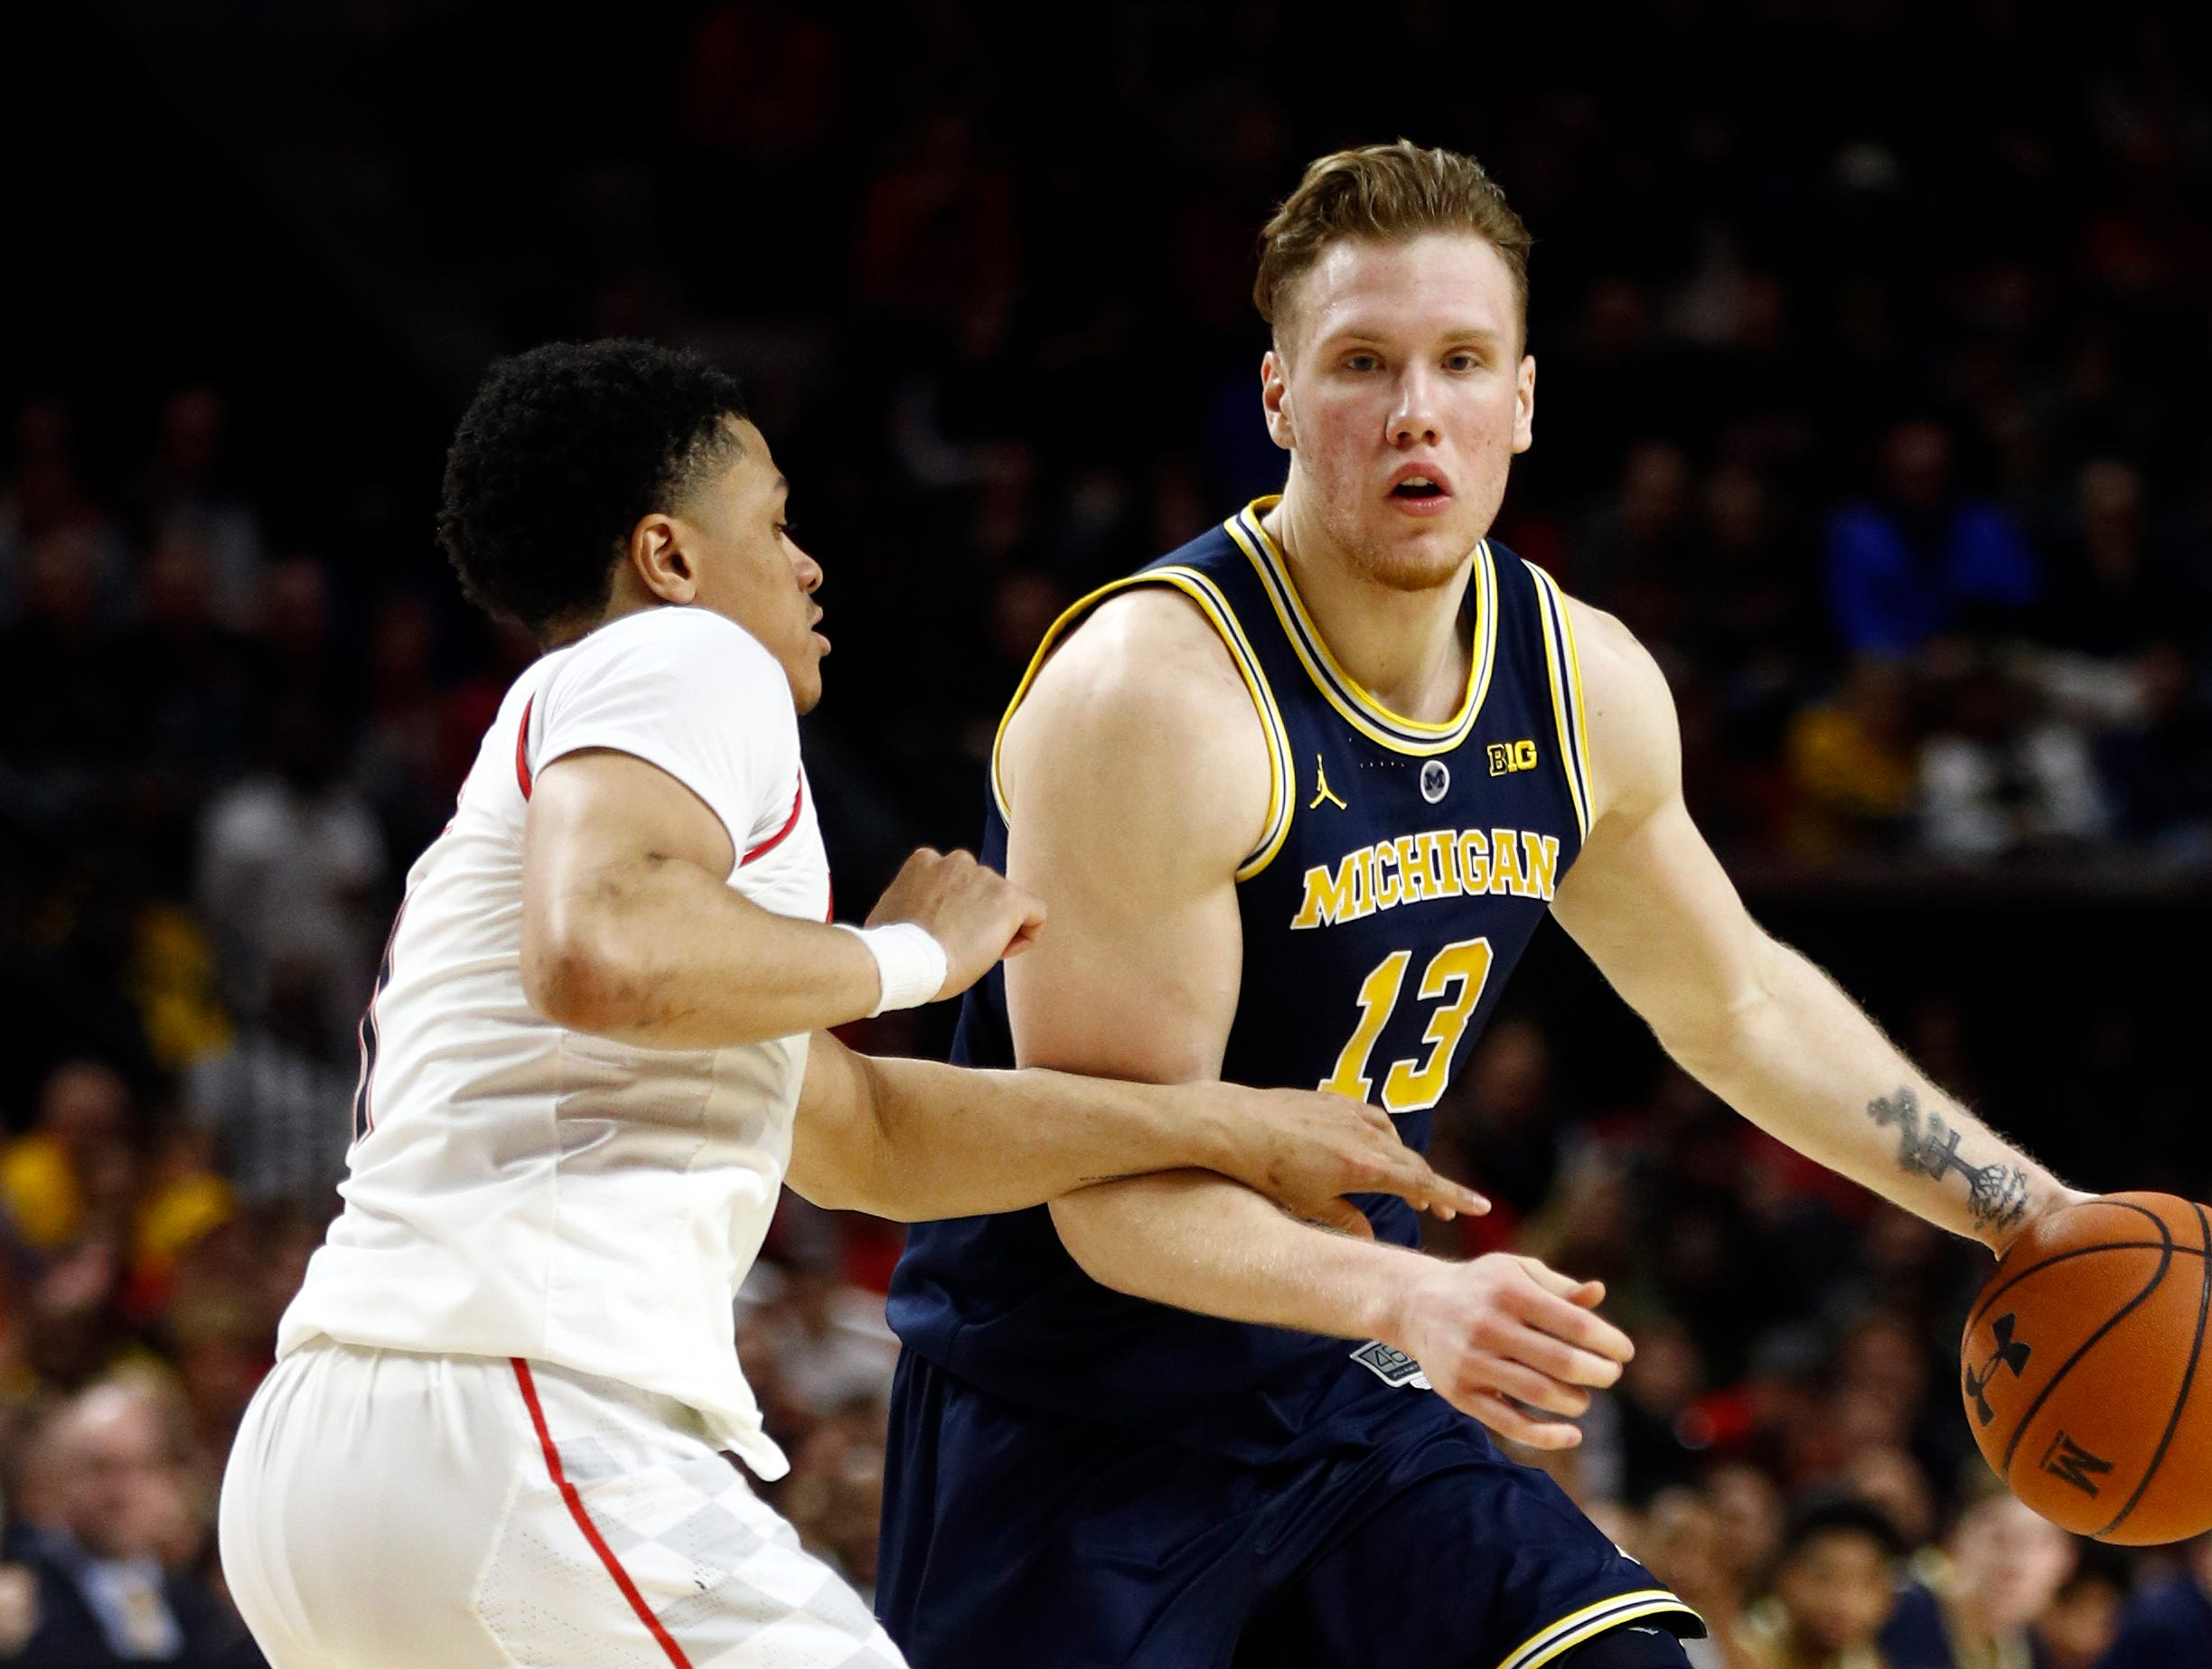 Michigan forward Ignas Brazdeikis, right, of Canada, drives against Maryland guard Anthony Cowan Jr. in the first half of an NCAA college basketball game, Sunday, March 3, 2019, in College Park, Md.